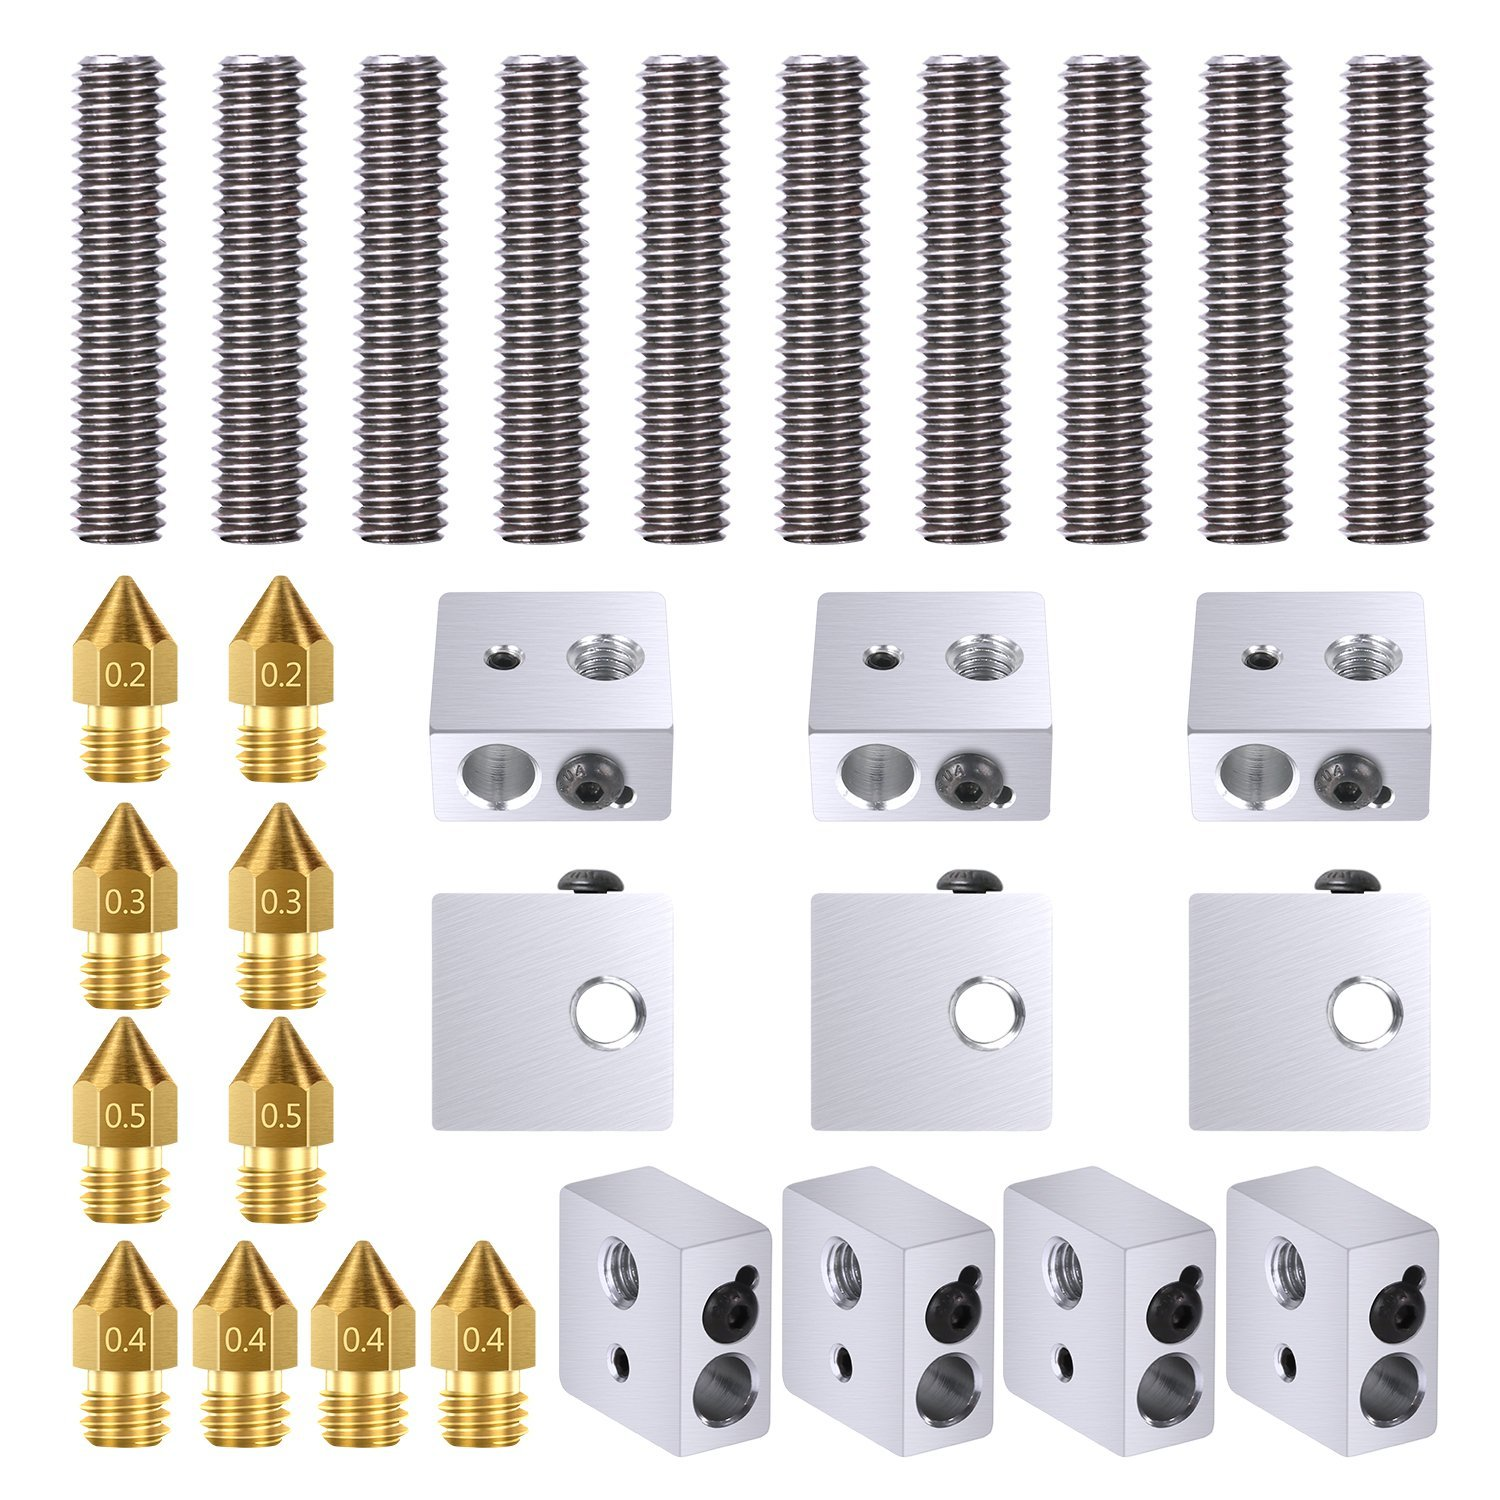 HOT-10pcs 30MM Length Extruder 1.75mm Throat Tube and 10pcs Brass Extruder Nozzle Print Heads And 10pcs Aluminum Heater Block